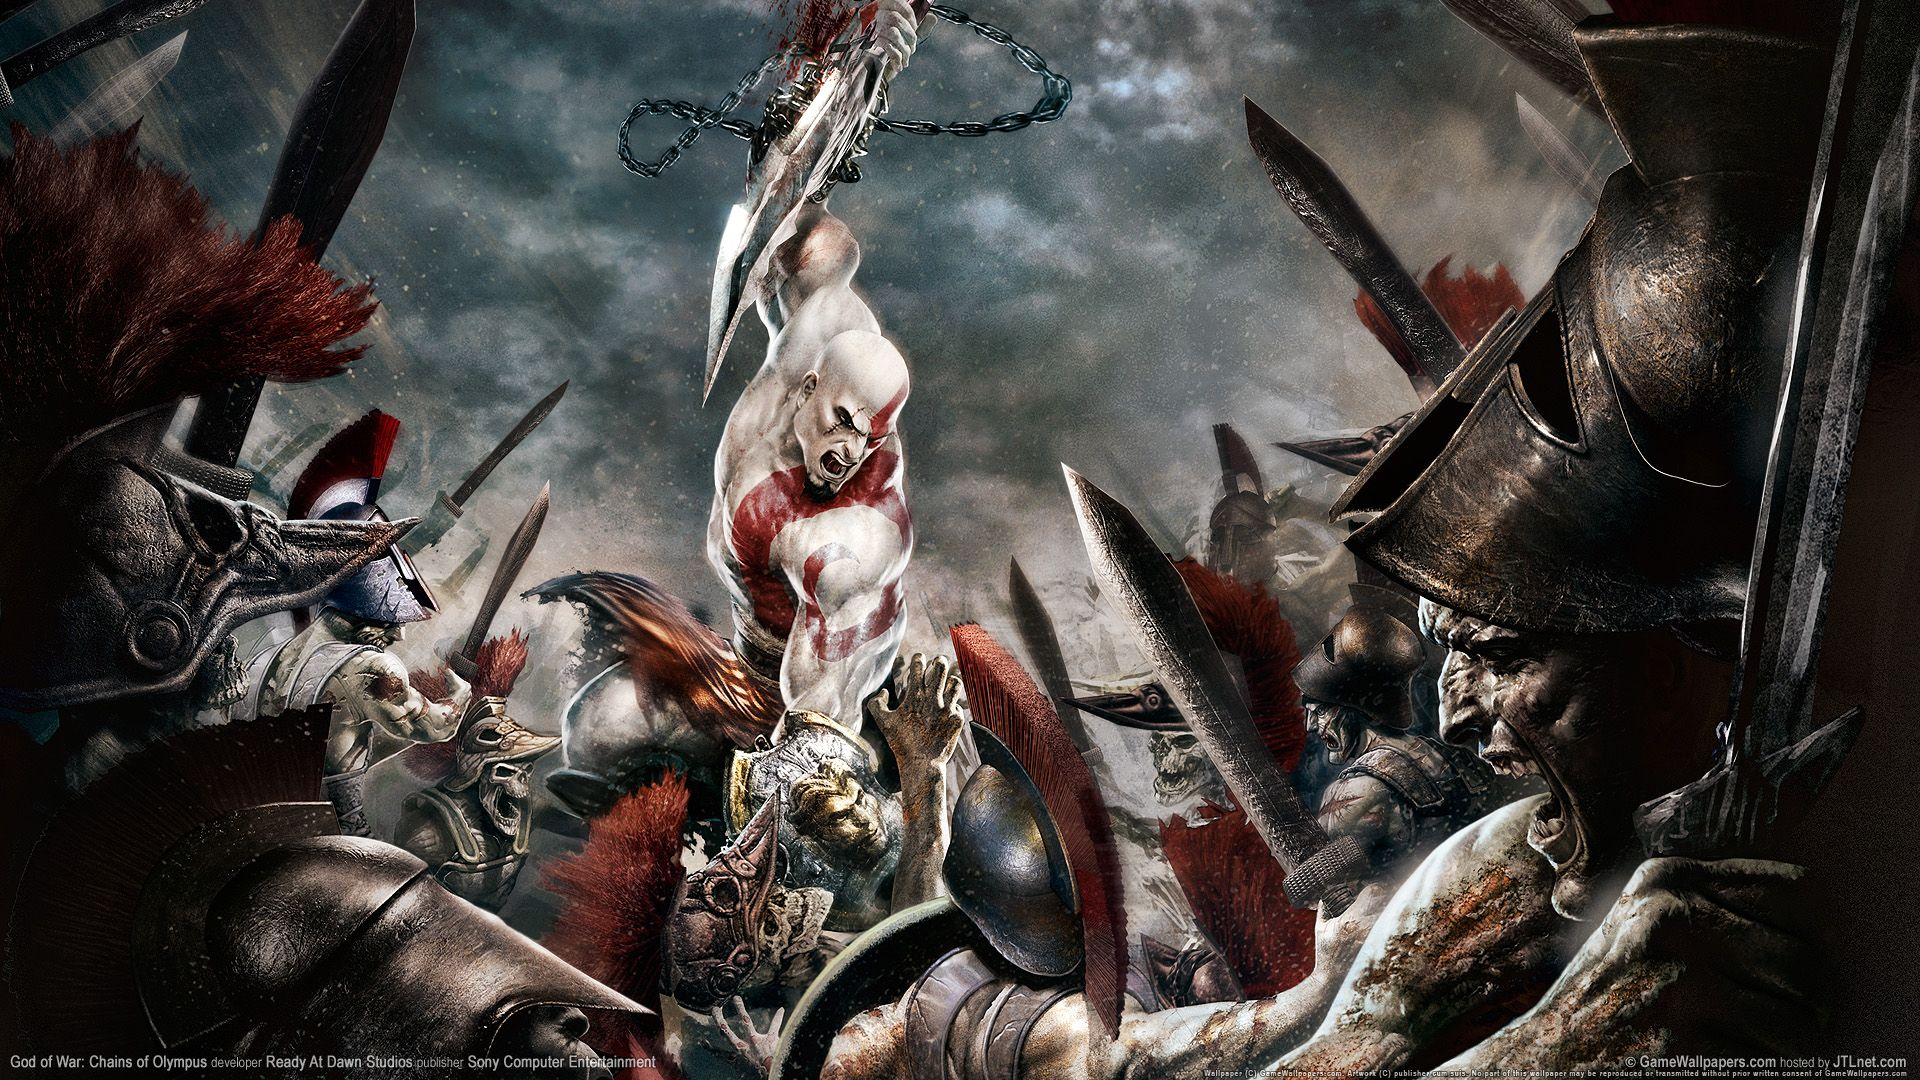 hd god of war 2 new game wallpaper for download – 17542 | papel de